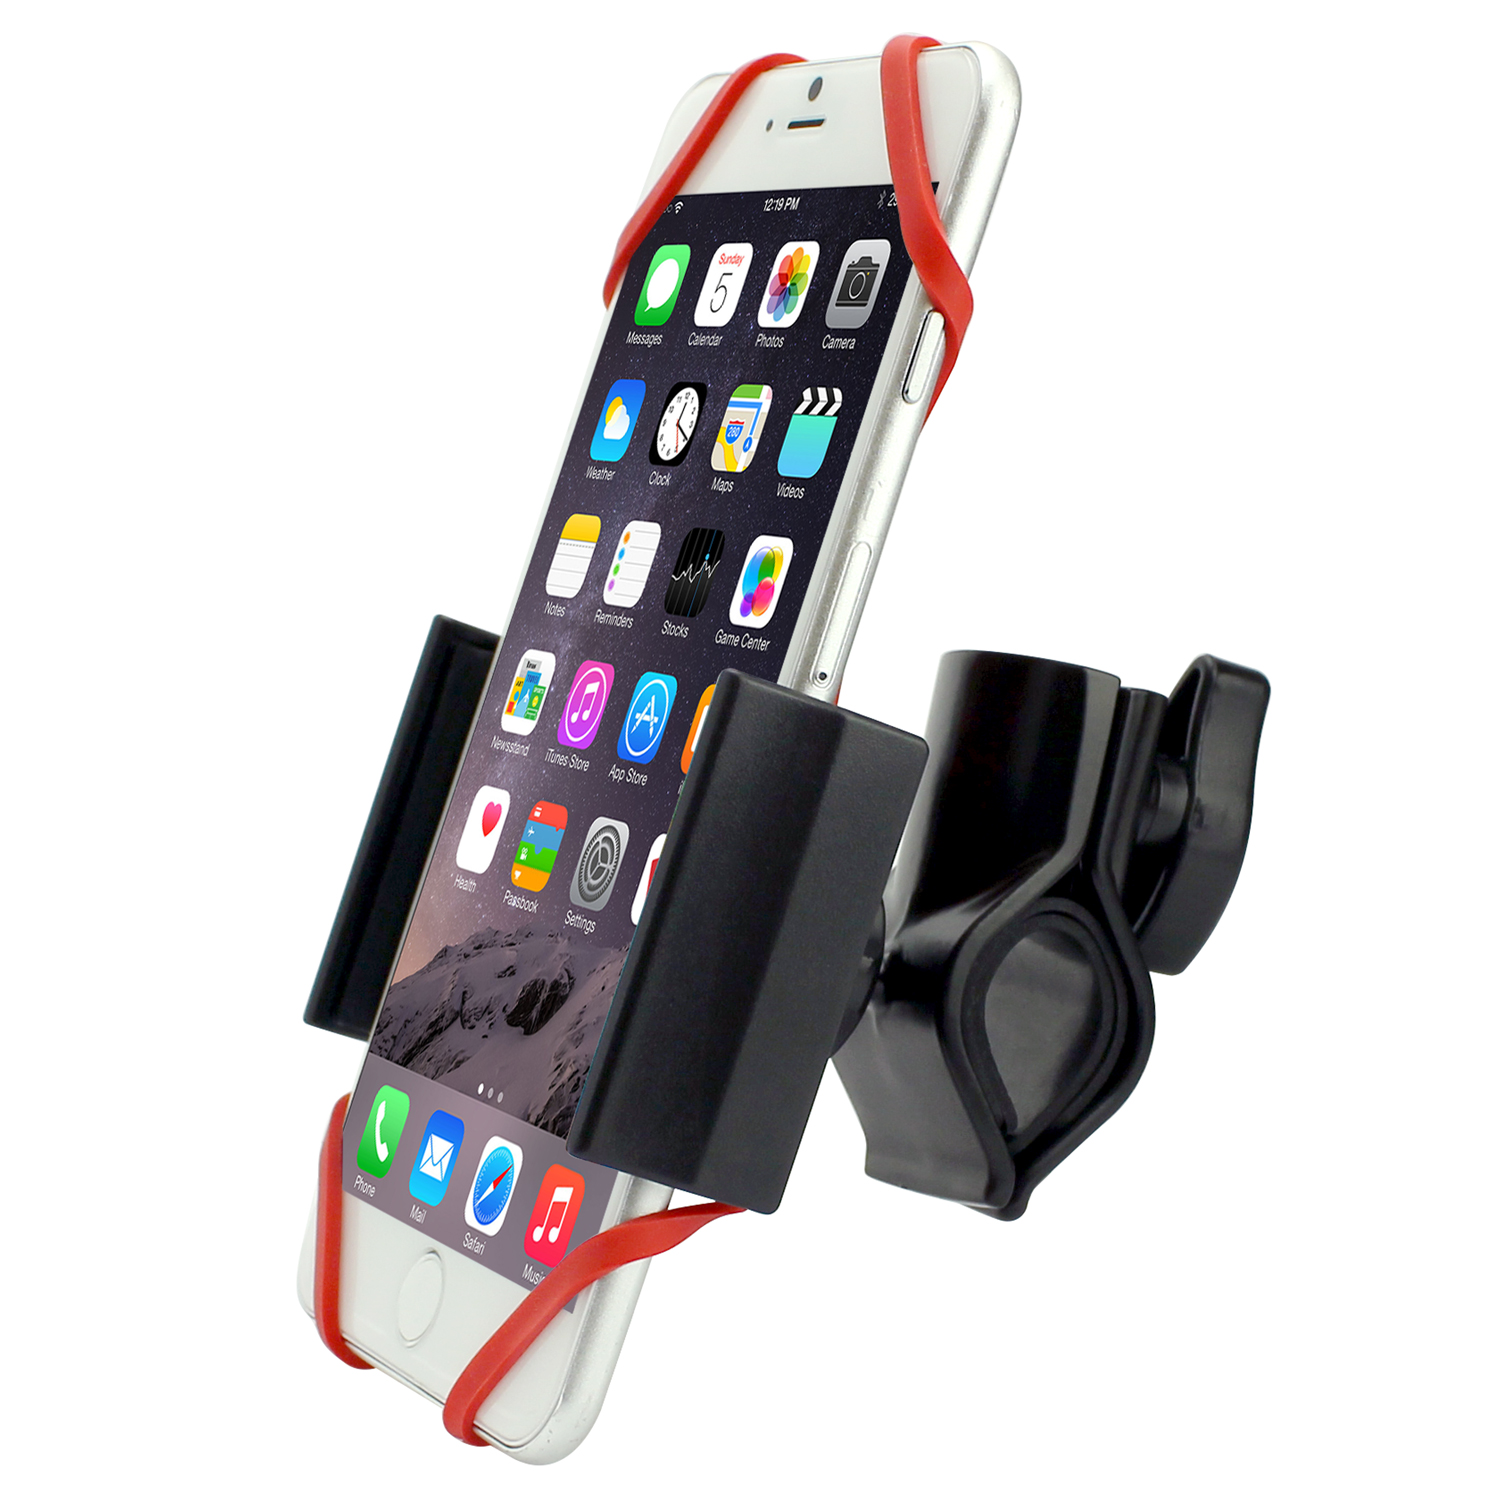 Sony Xperia E3 Bike Phone Mount Adjustable Black